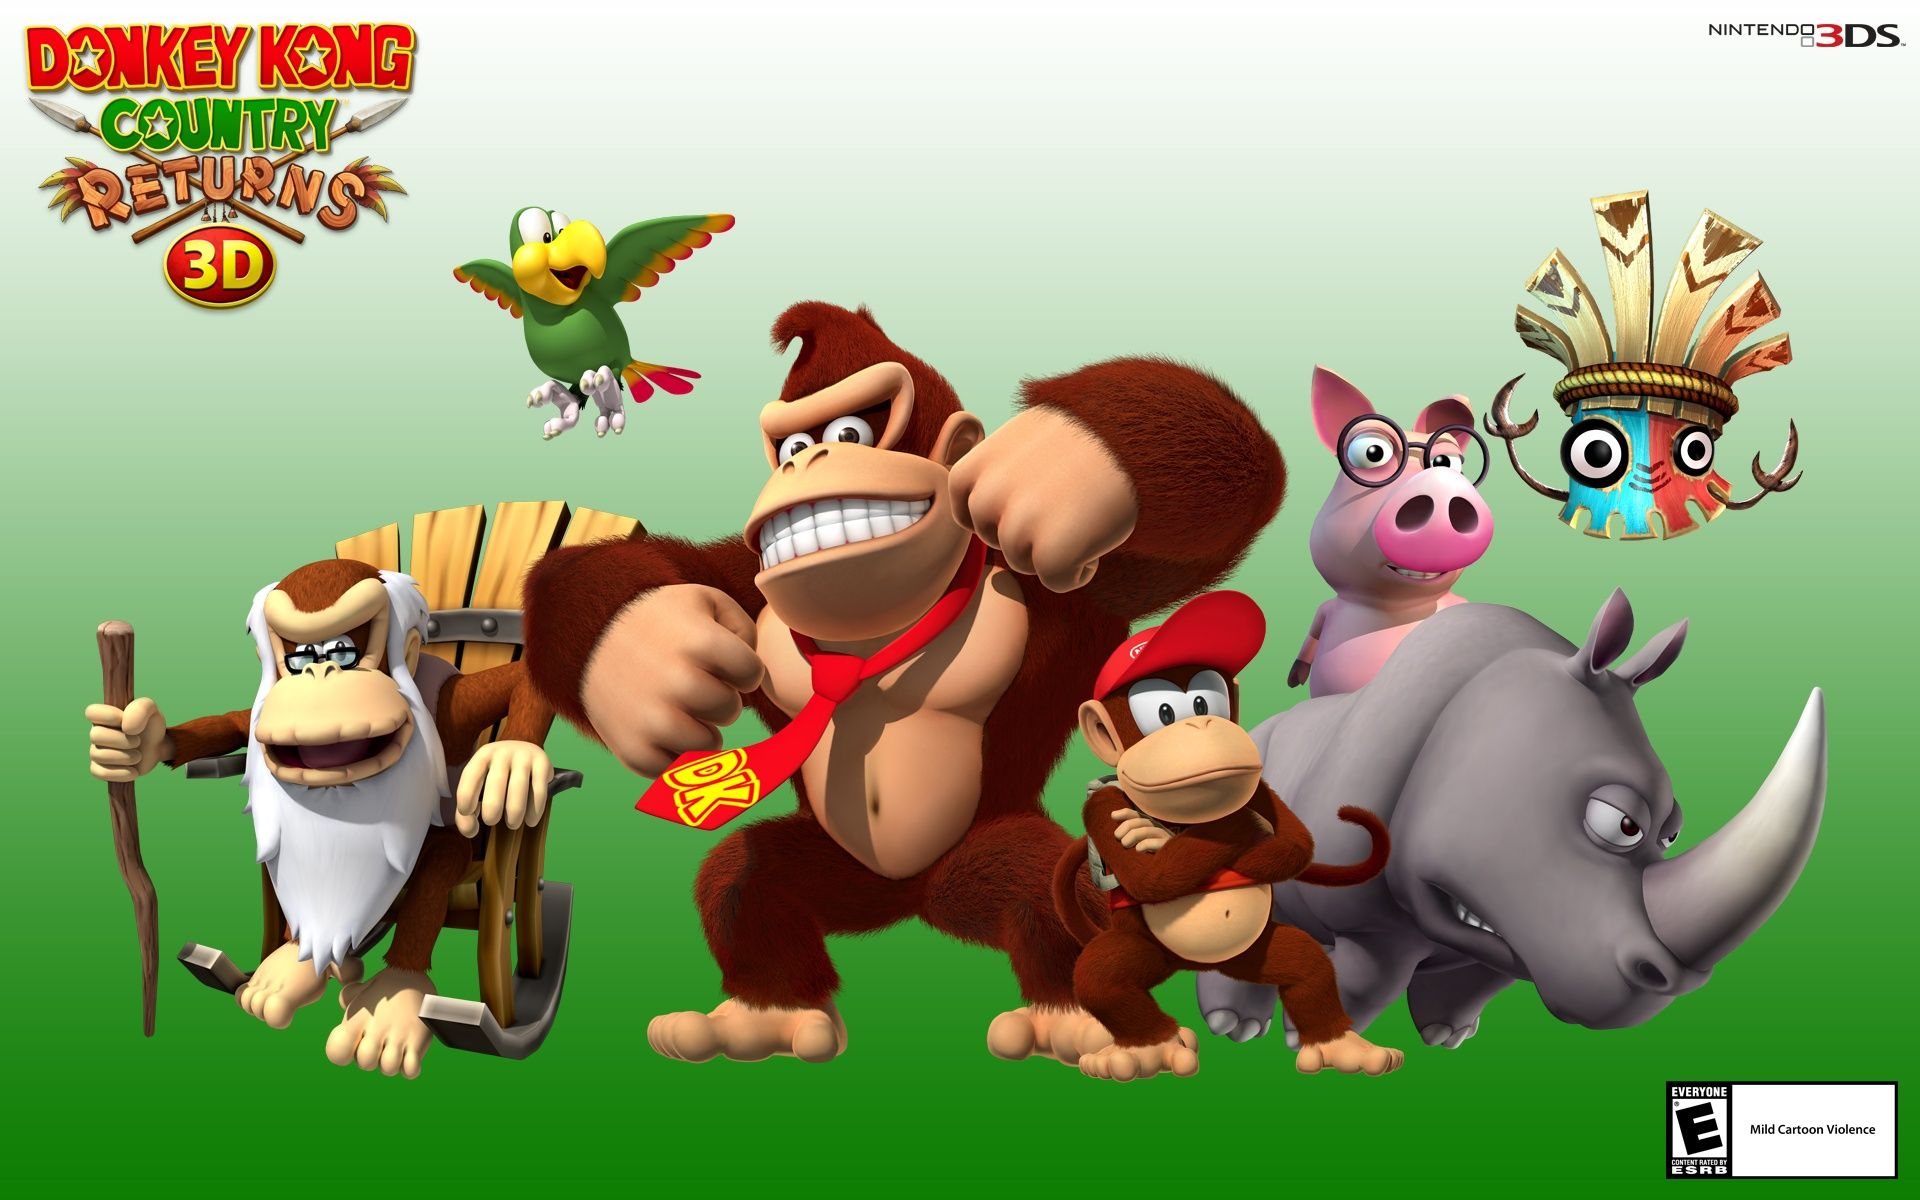 Donkey Kong Hd Wallpapers And Backgrounds Donkey Kong Country Donkey Kong Country Returns Donkey Kong